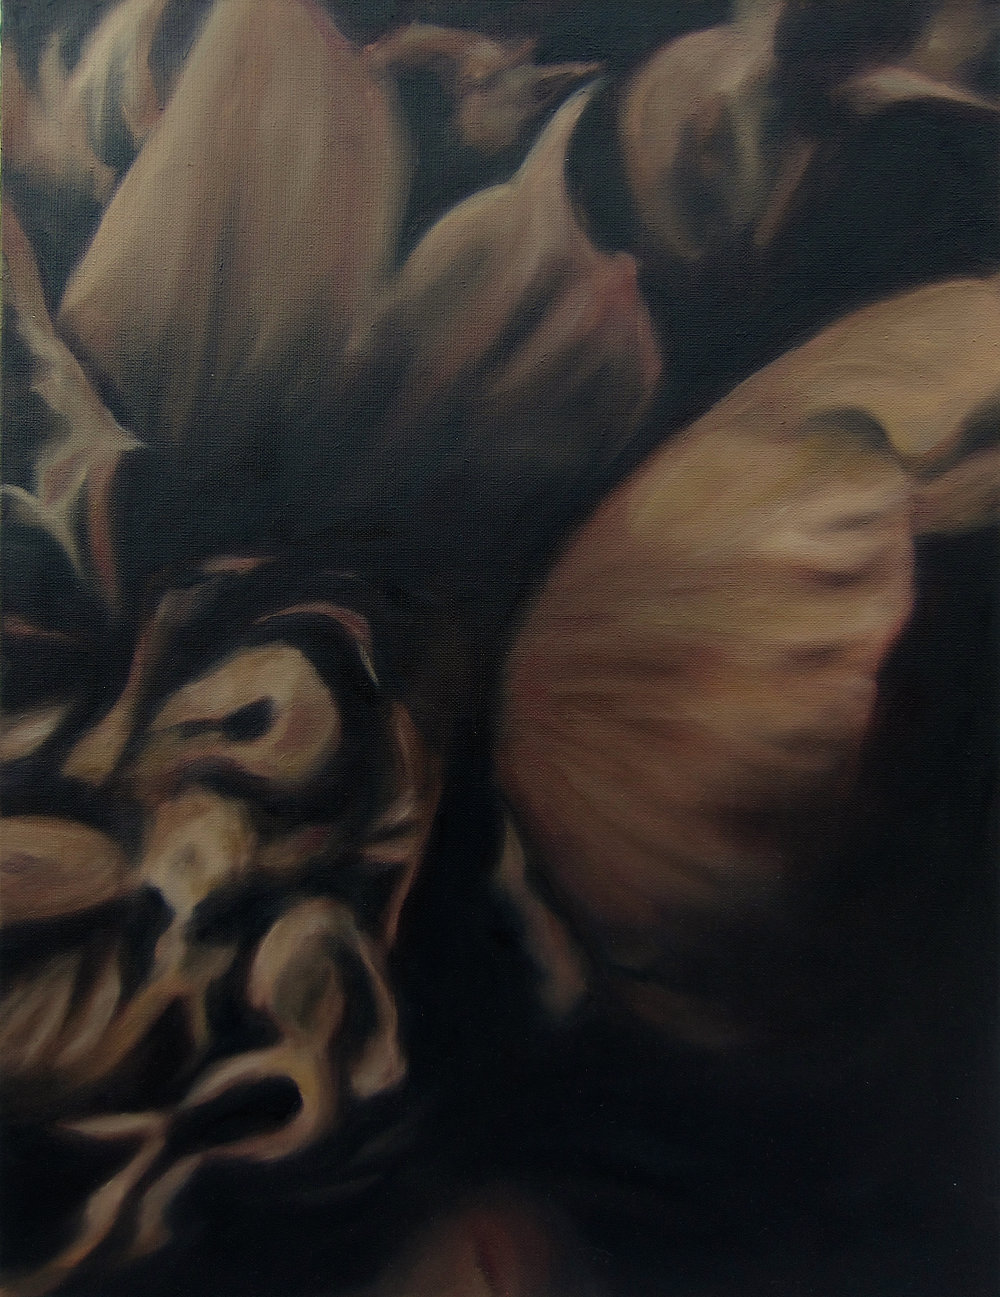 Language des fleurs et des choses muettes No.2,  2016  oil on linen, 36 x 36 in, 91 x 91 cm